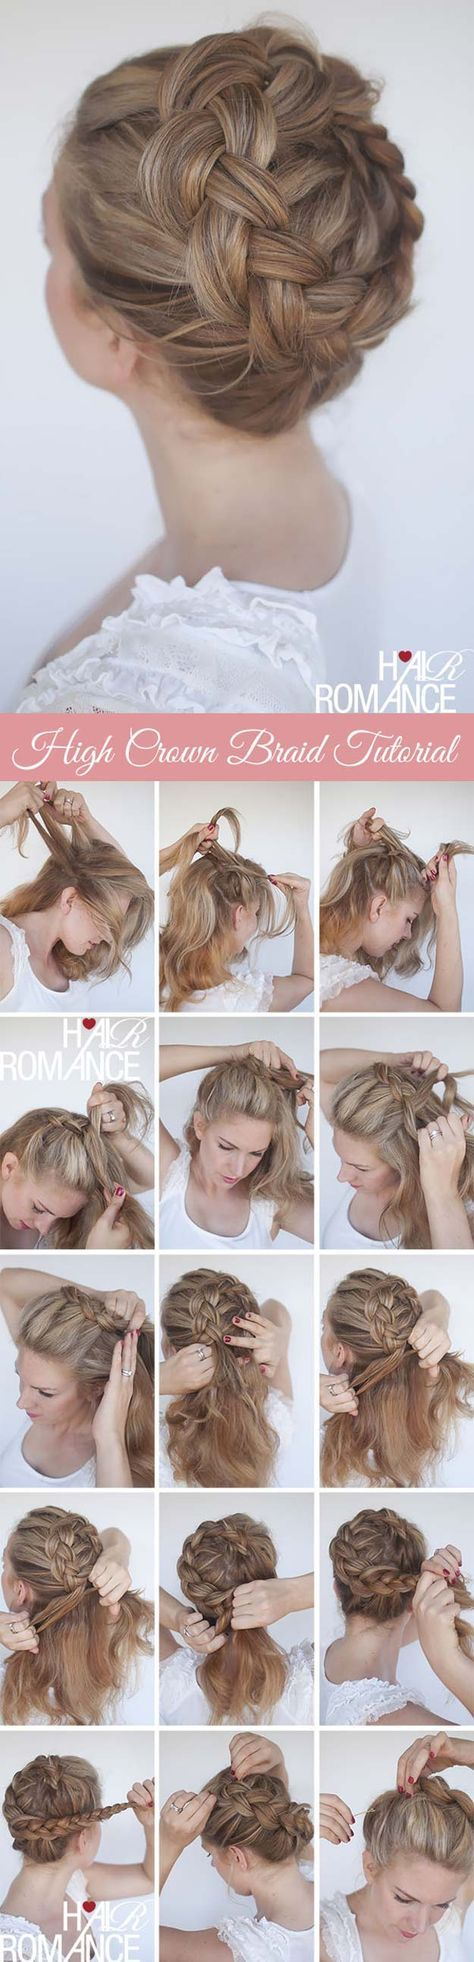 Best Hair Braiding Tutorials - High Braided Crown Tutorial - Easy Step by Step Tutorials for Braids - How To Braid Fishtail, French Braids, Flower Crown, Side Braids, Cornrows, Updos - Cool Braided Hairstyles for Girls, Teens and Women - School, Day and Evening, Boho, Casual and Formal Looks http://diyprojectsforteens.com/hair-braiding-tutorials